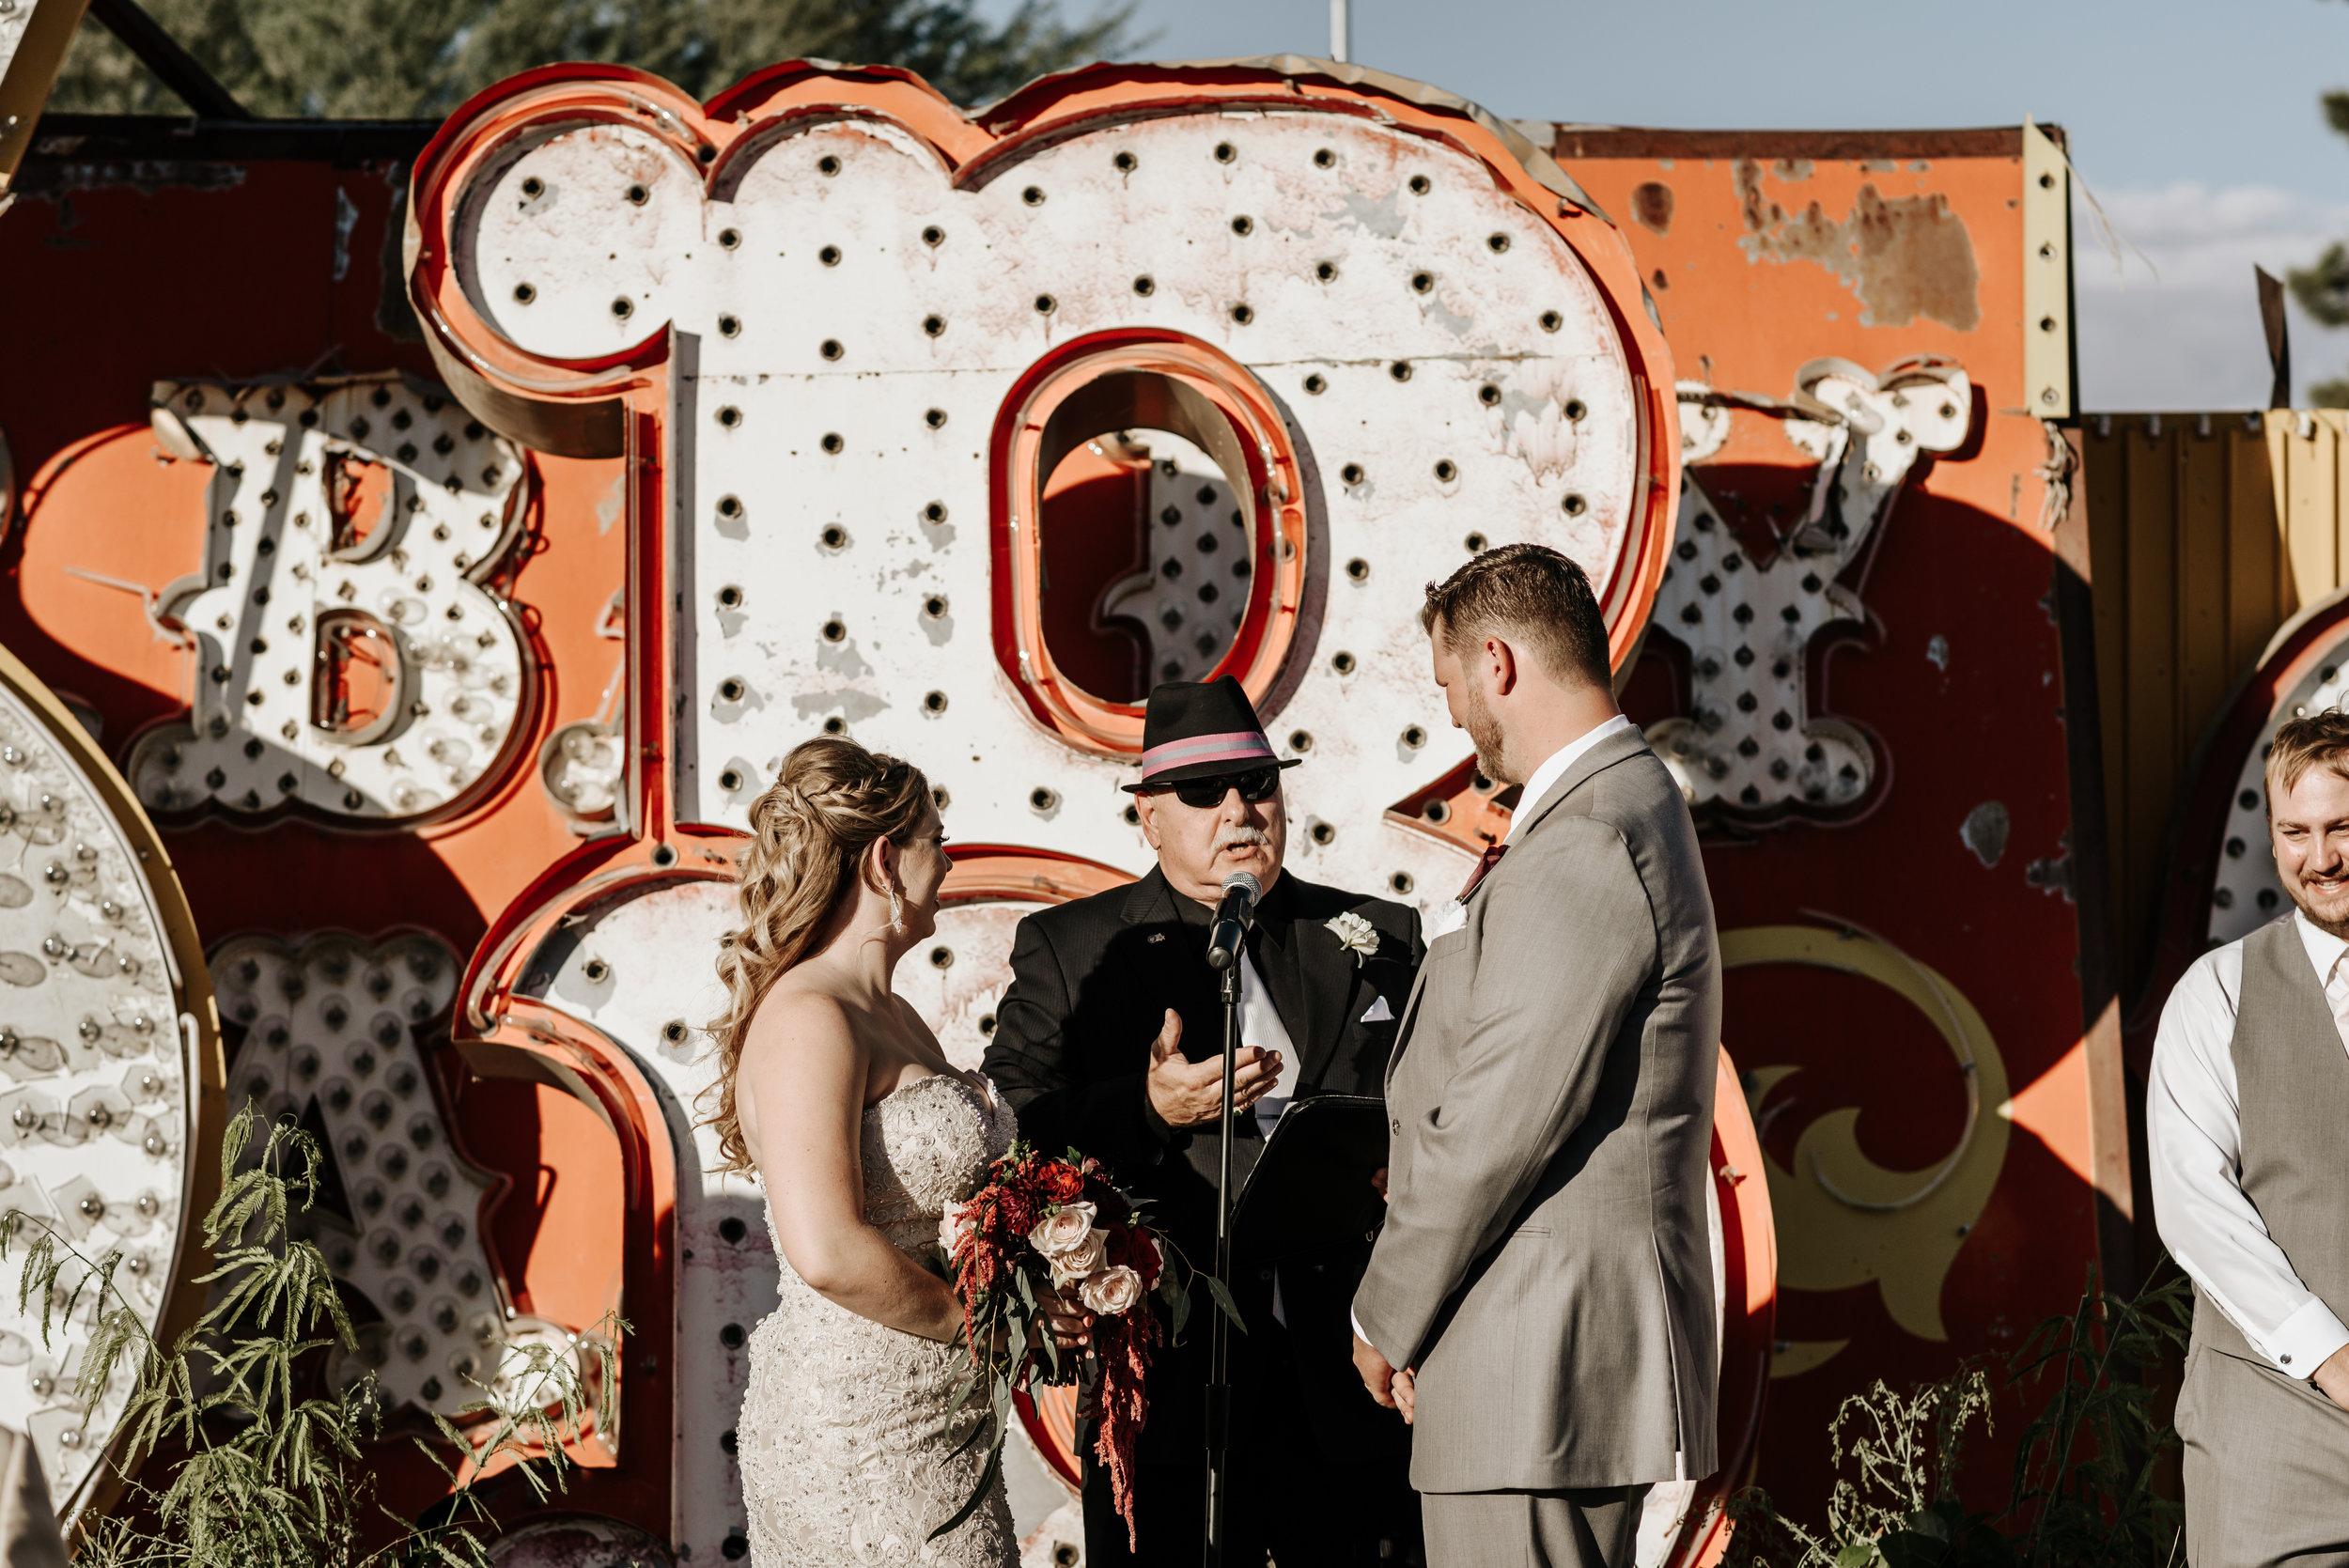 Neon-Museum-Wedding-Las-Vegas-Nevada-Golden-Nugget-Photography-by-V-Ally-and-Dan-6588.jpg